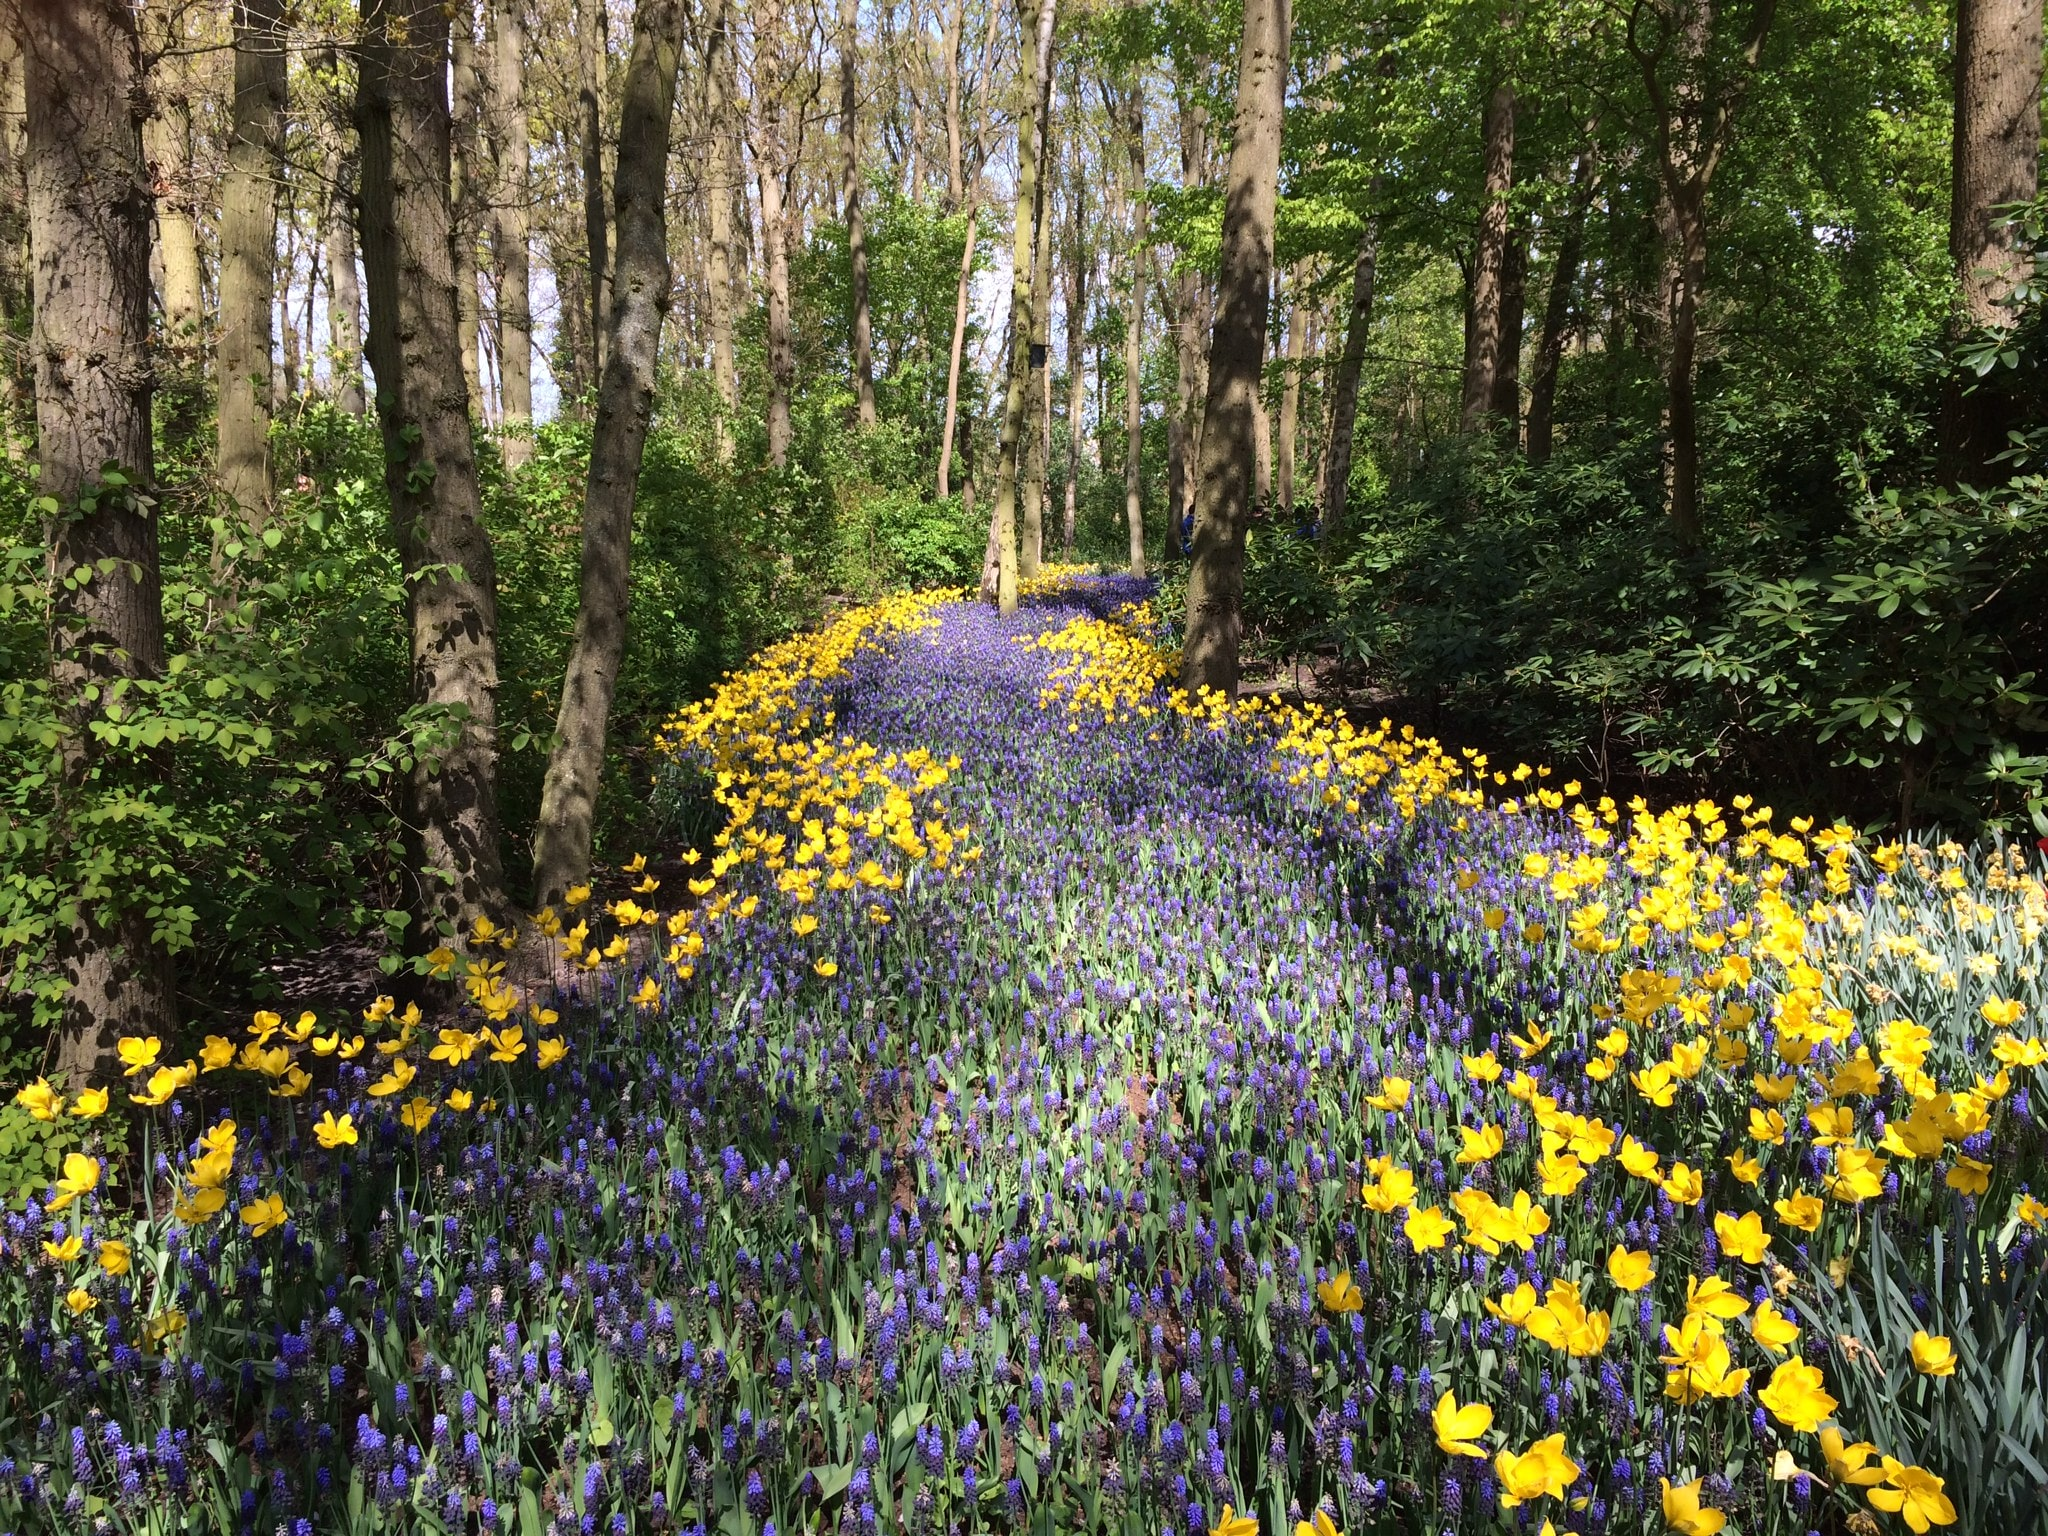 Violet and yellow flowers covering a trail through a forest